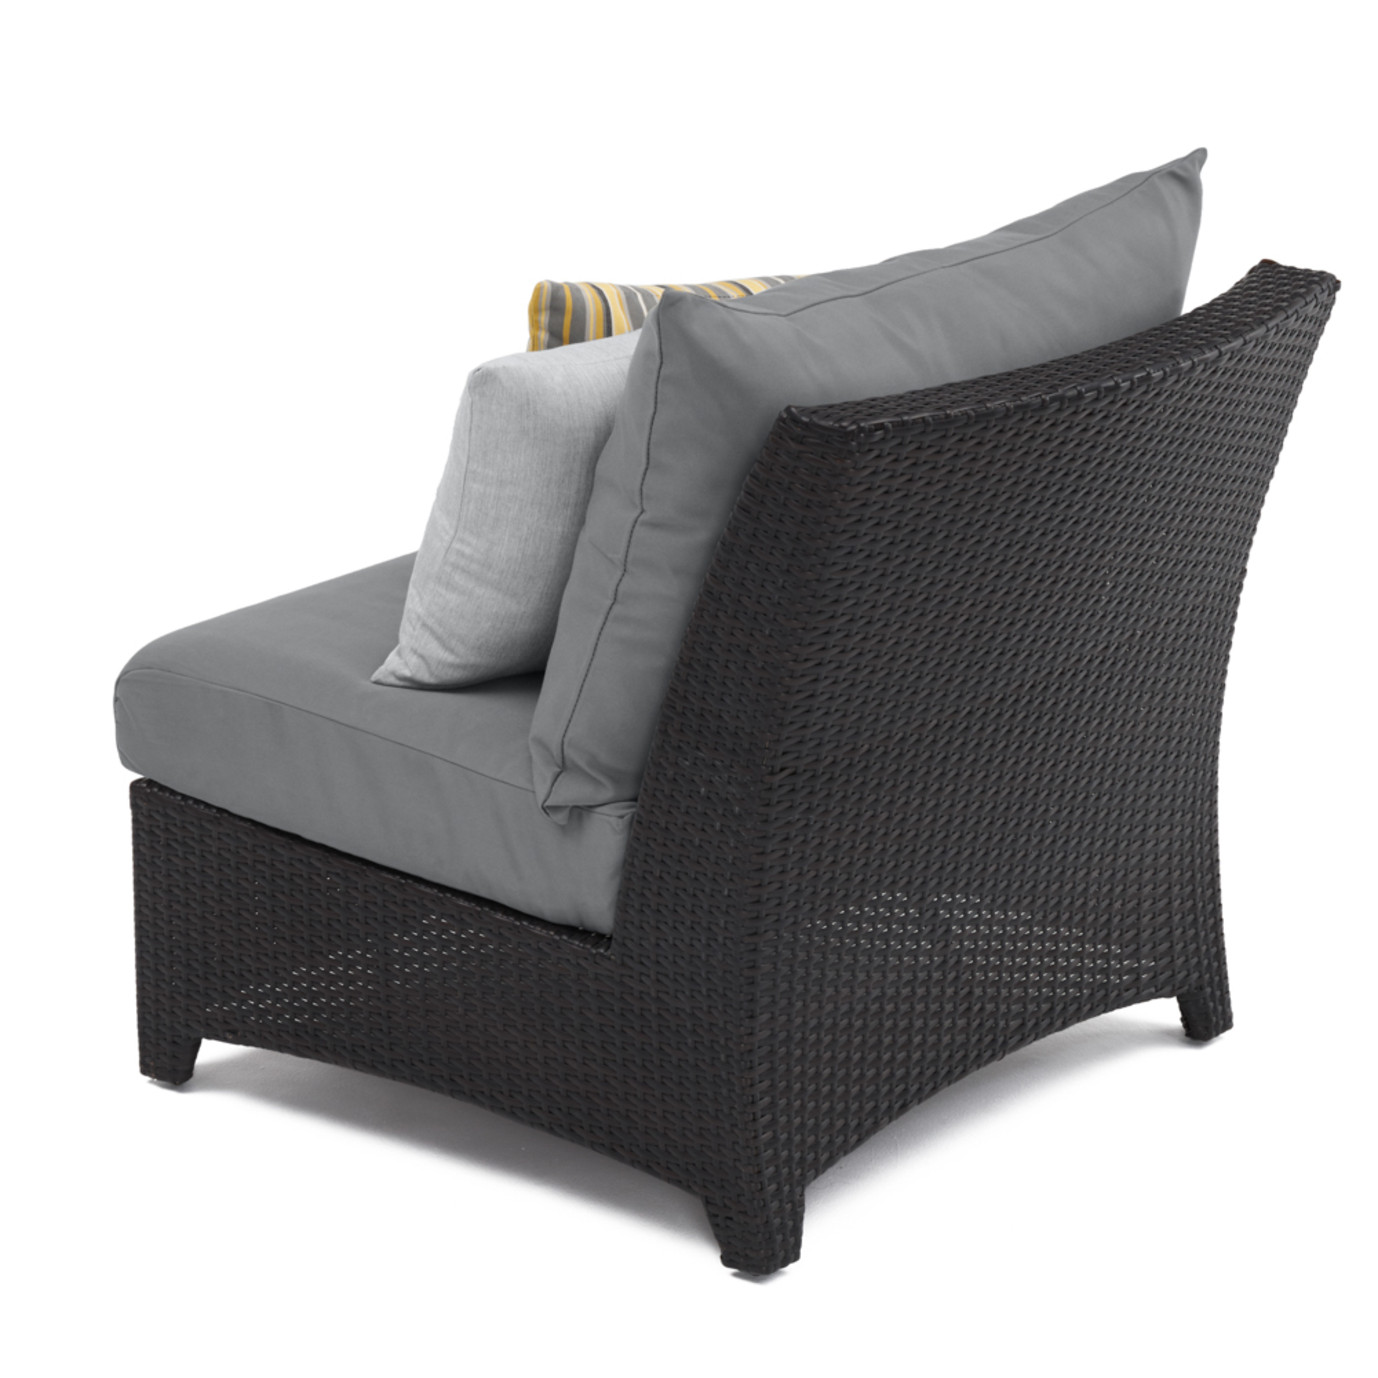 Deco™ Armless Chairs - Charcoal Gray